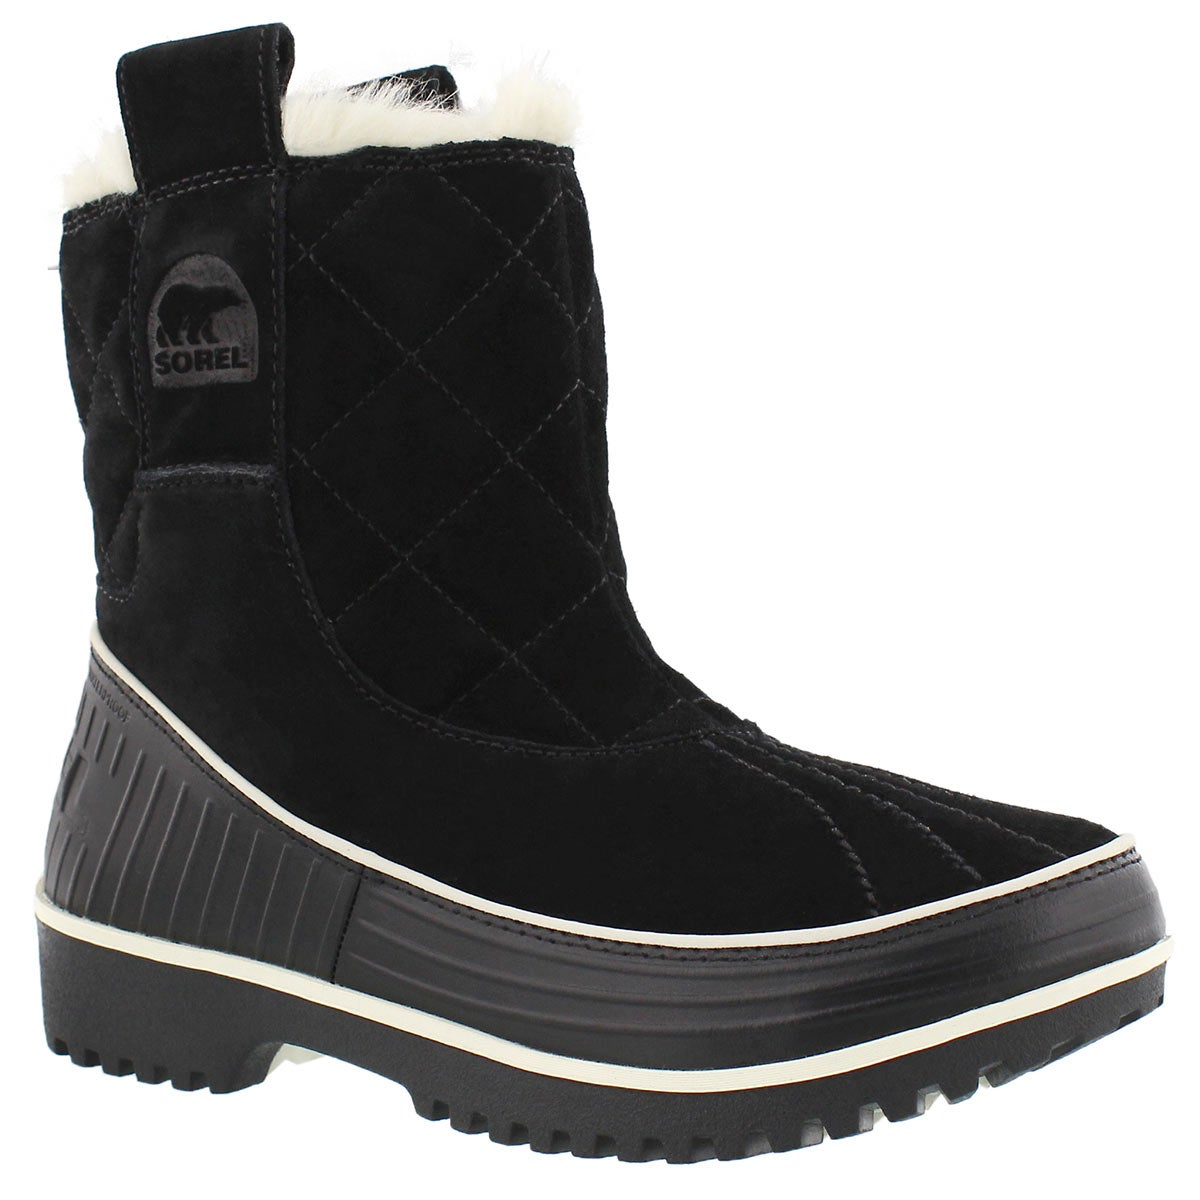 Lds Tivoli II Pull On blk winter boot